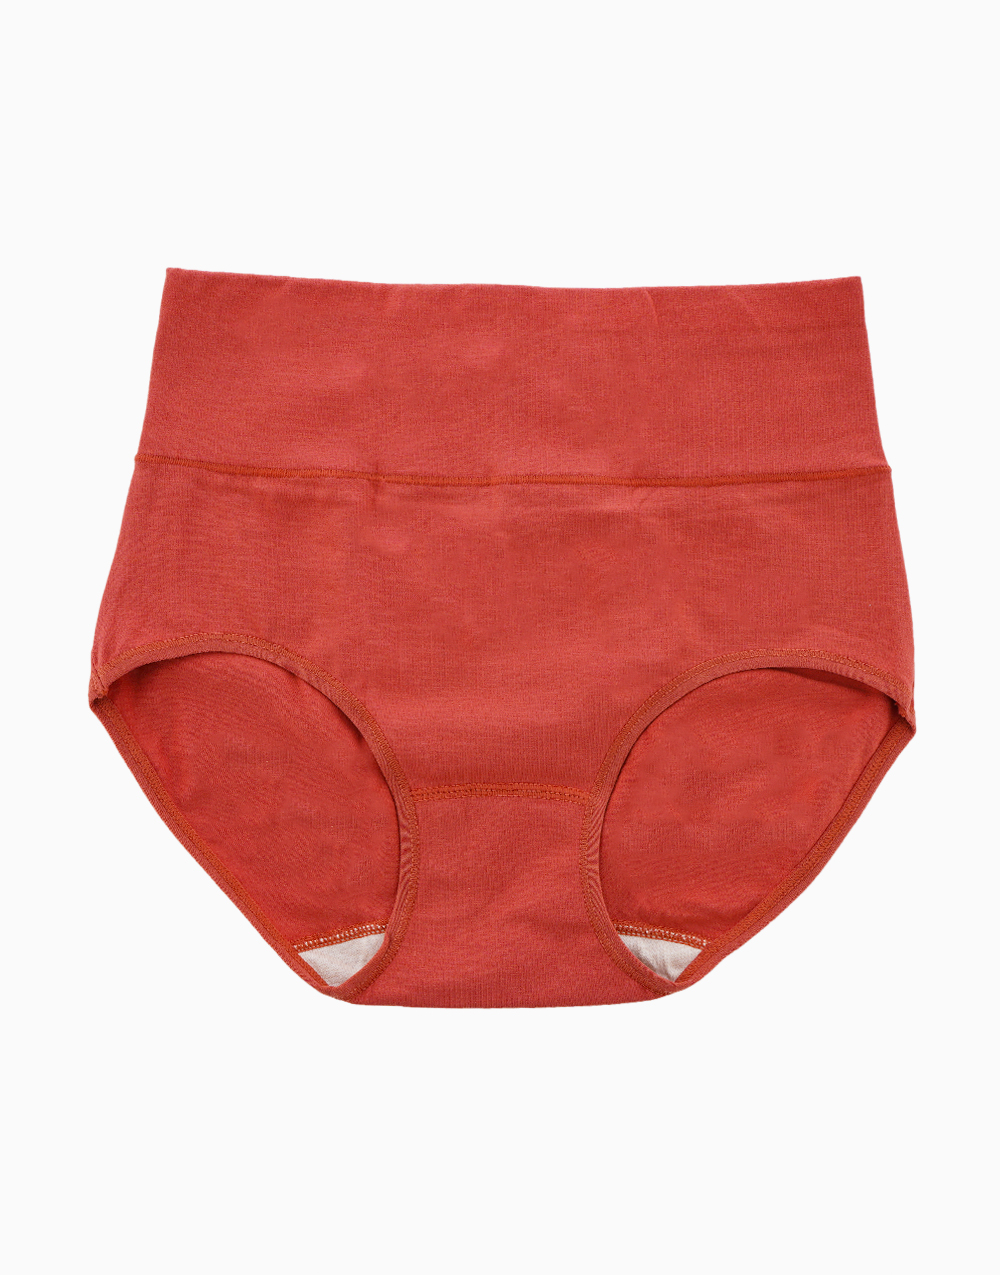 Belly Bikinis in Brick Red (Set of 3 High Rise Control Panties) by Jellyfit | XL